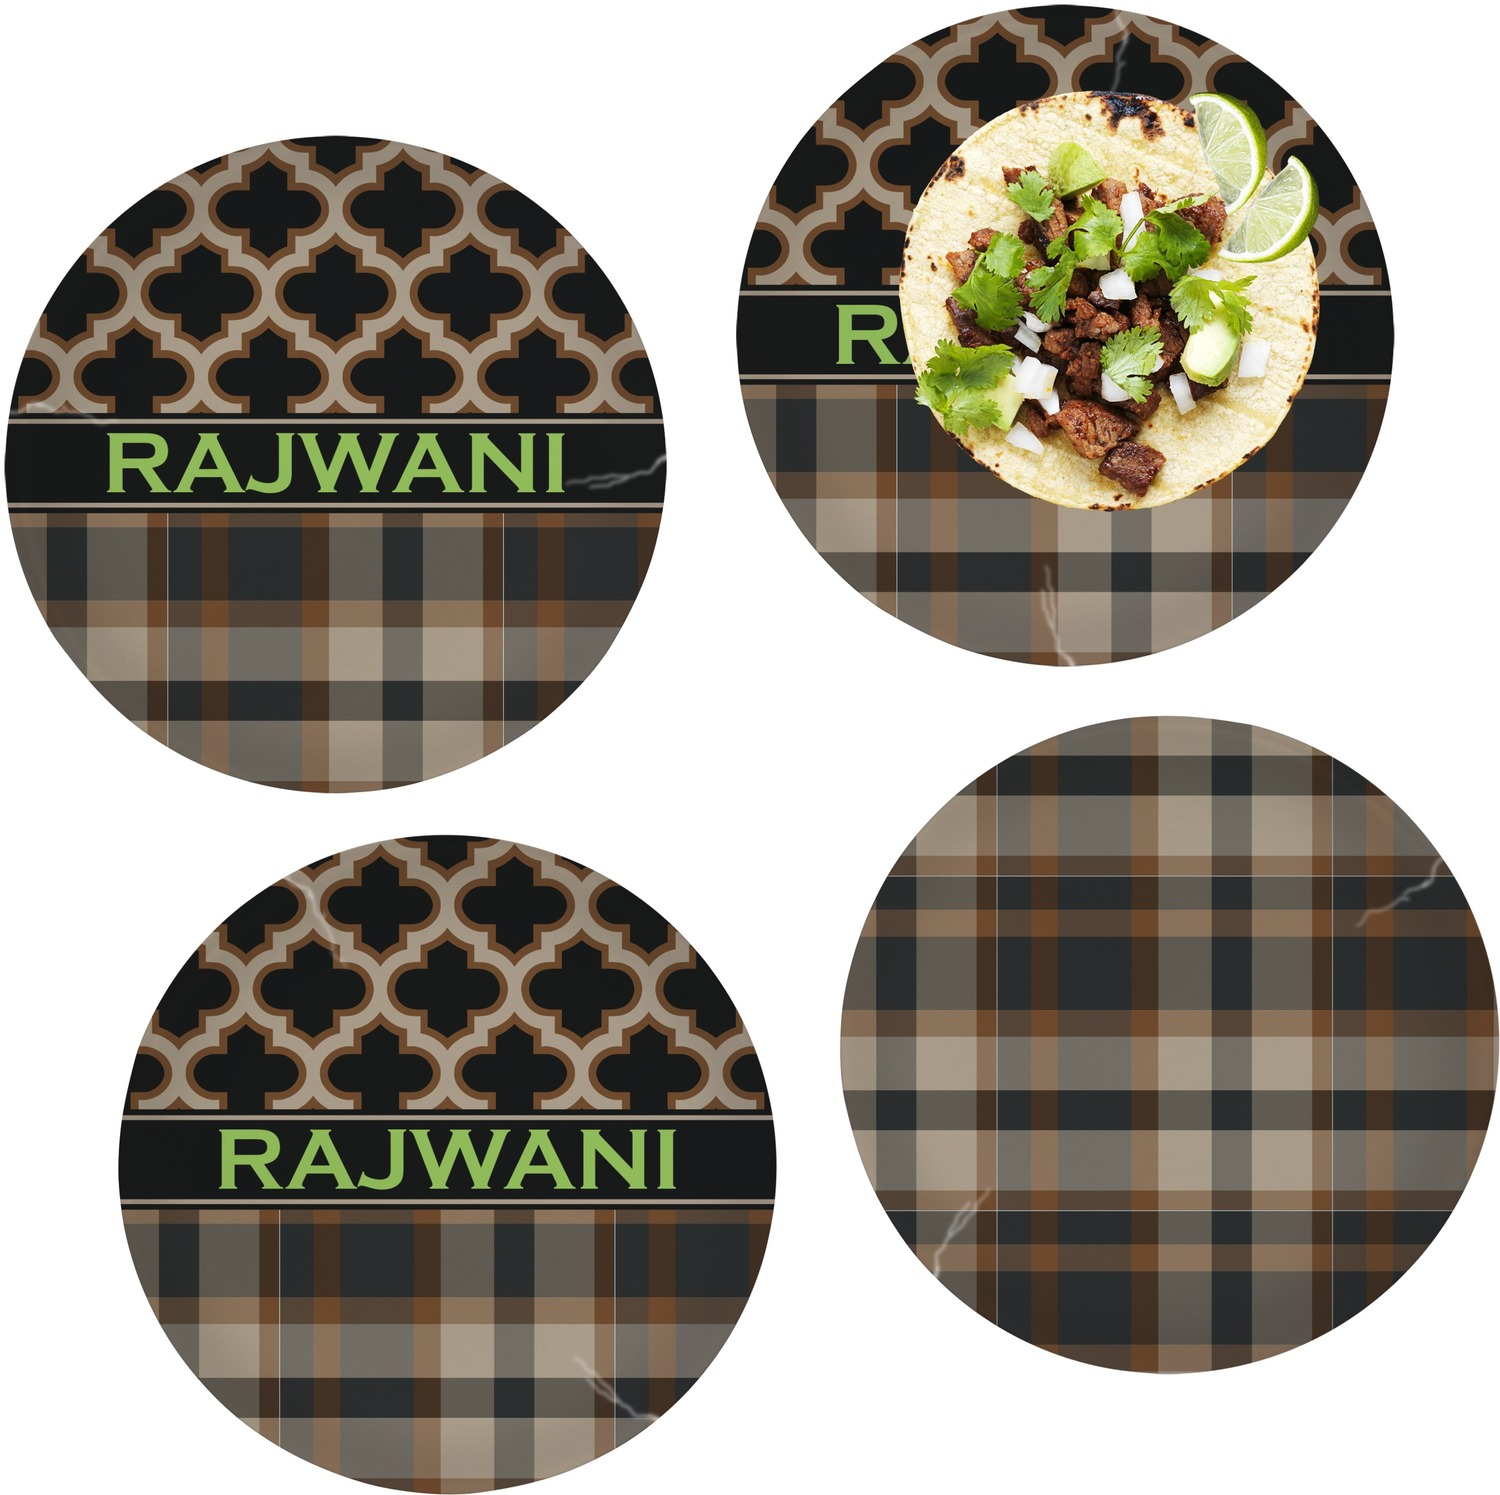 Moroccan \u0026 Plaid Set of 4 Lunch / Dinner Plates (Glass) (Personalized)  sc 1 st  YouCustomizeIt & Moroccan \u0026 Plaid Set of 4 Lunch / Dinner Plates (Glass ...